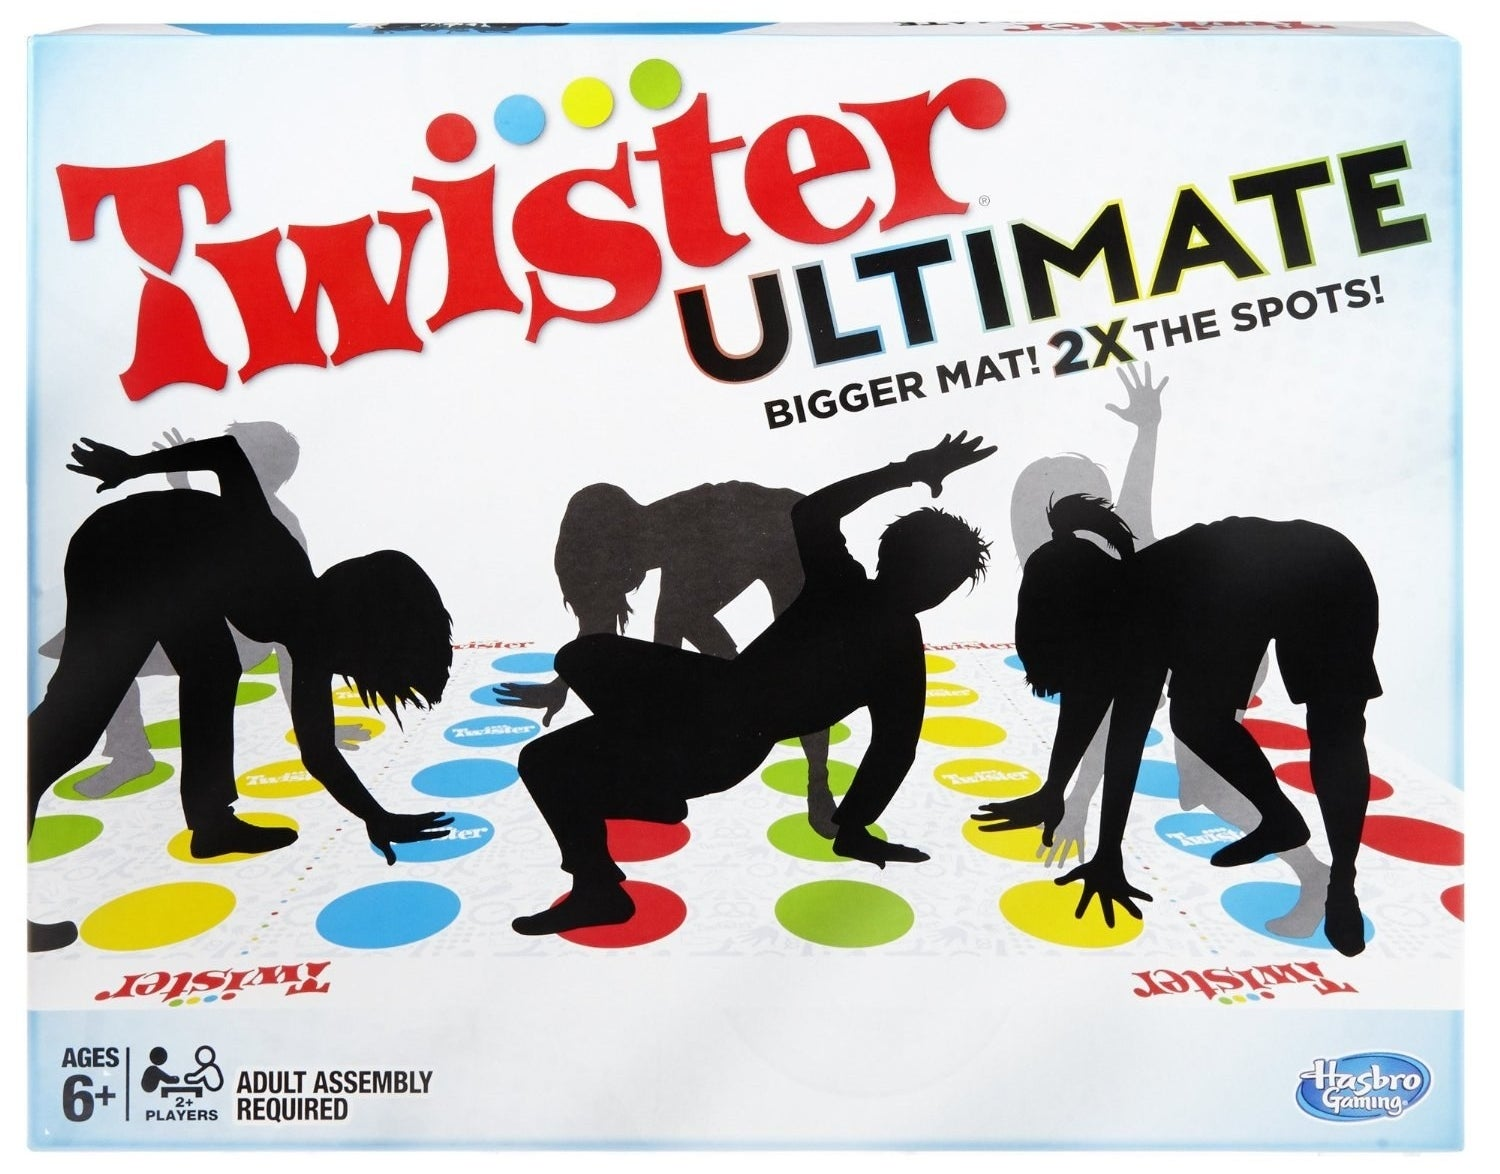 And finally, a round of Ultimate Twister. Not the kind experienced in The Wizard of Oz.